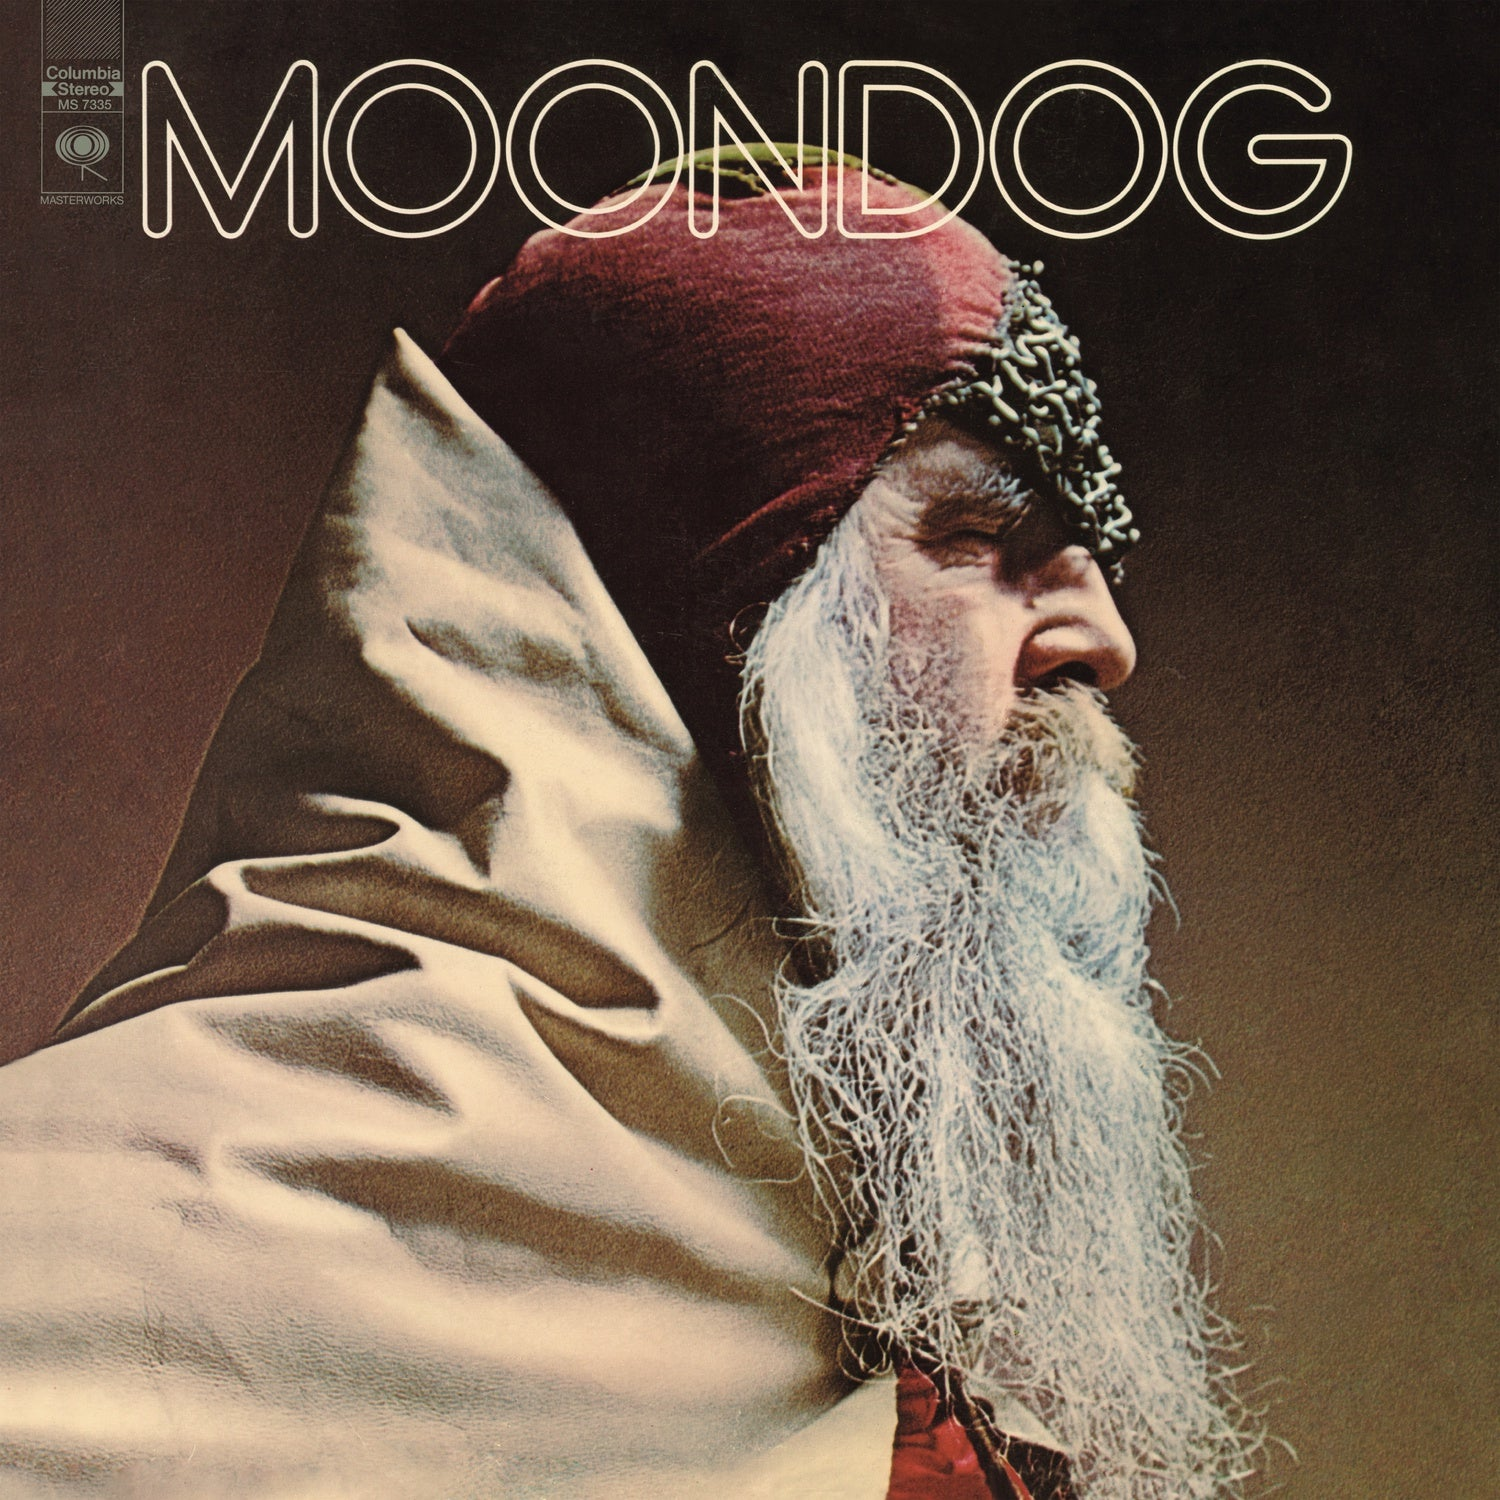 Moondog ‎–  Moondog (1969) - New Lp Record 2017 CBS Caribou USA Vinyl & Download - Jazz / Classical